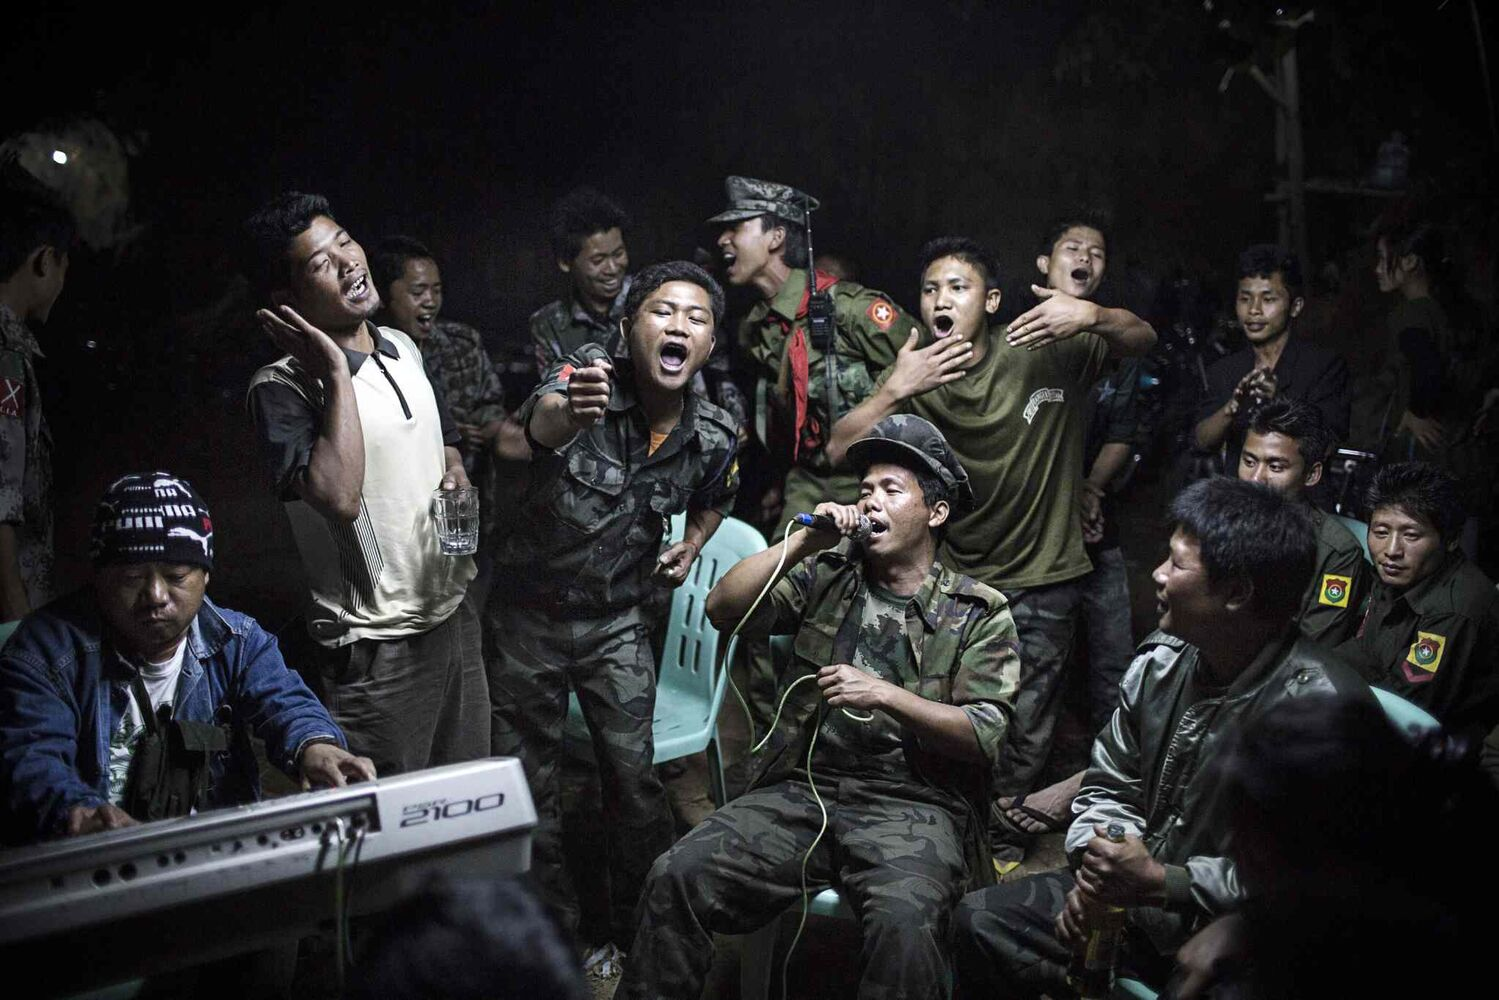 First prize in the Daily Life Single category by Julius Schrank of Germany<p>   Kachin Independence Army fighters drink and celebrate at a funeral of one of their commanders who died the day before in Burma on March 15, 2013.  (Julius Schrank, De Volkskrant)